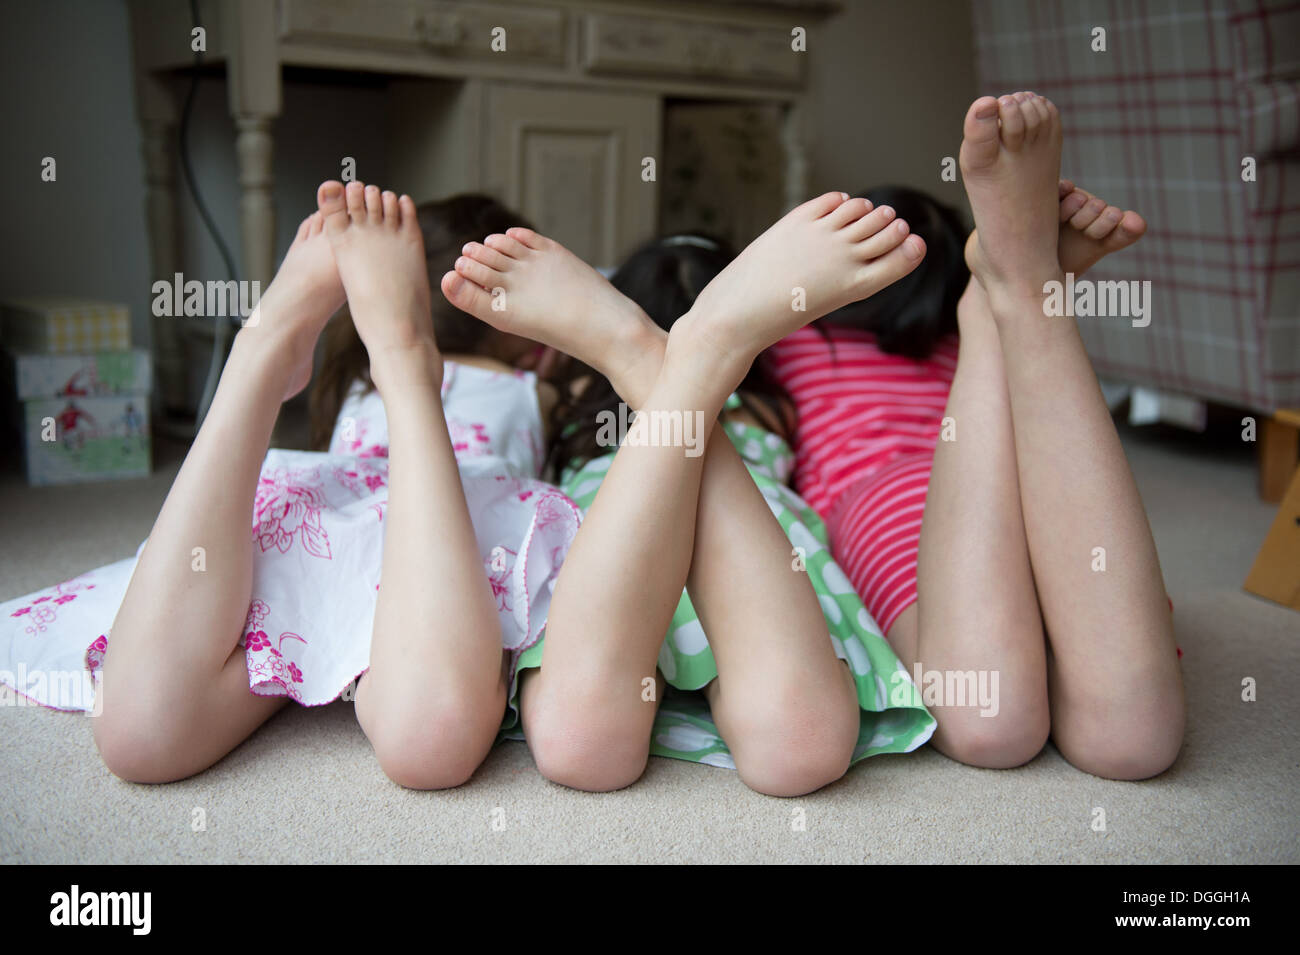 Girls lying on floor together with feet up - Stock Image